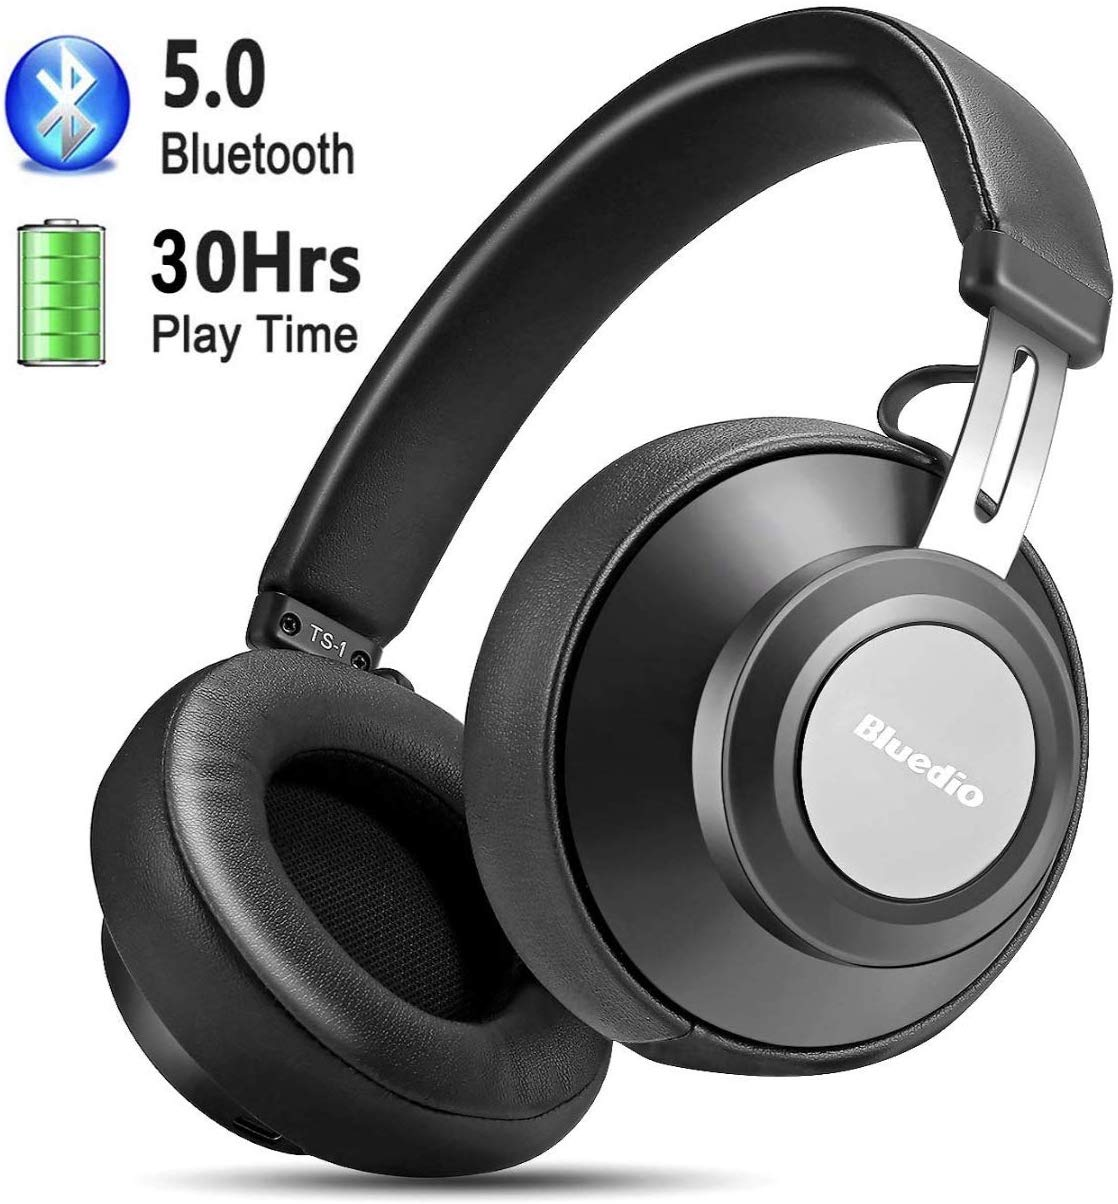 YINSAN Wireless Headphones 30 Hrs Playtime Noise Cancelling